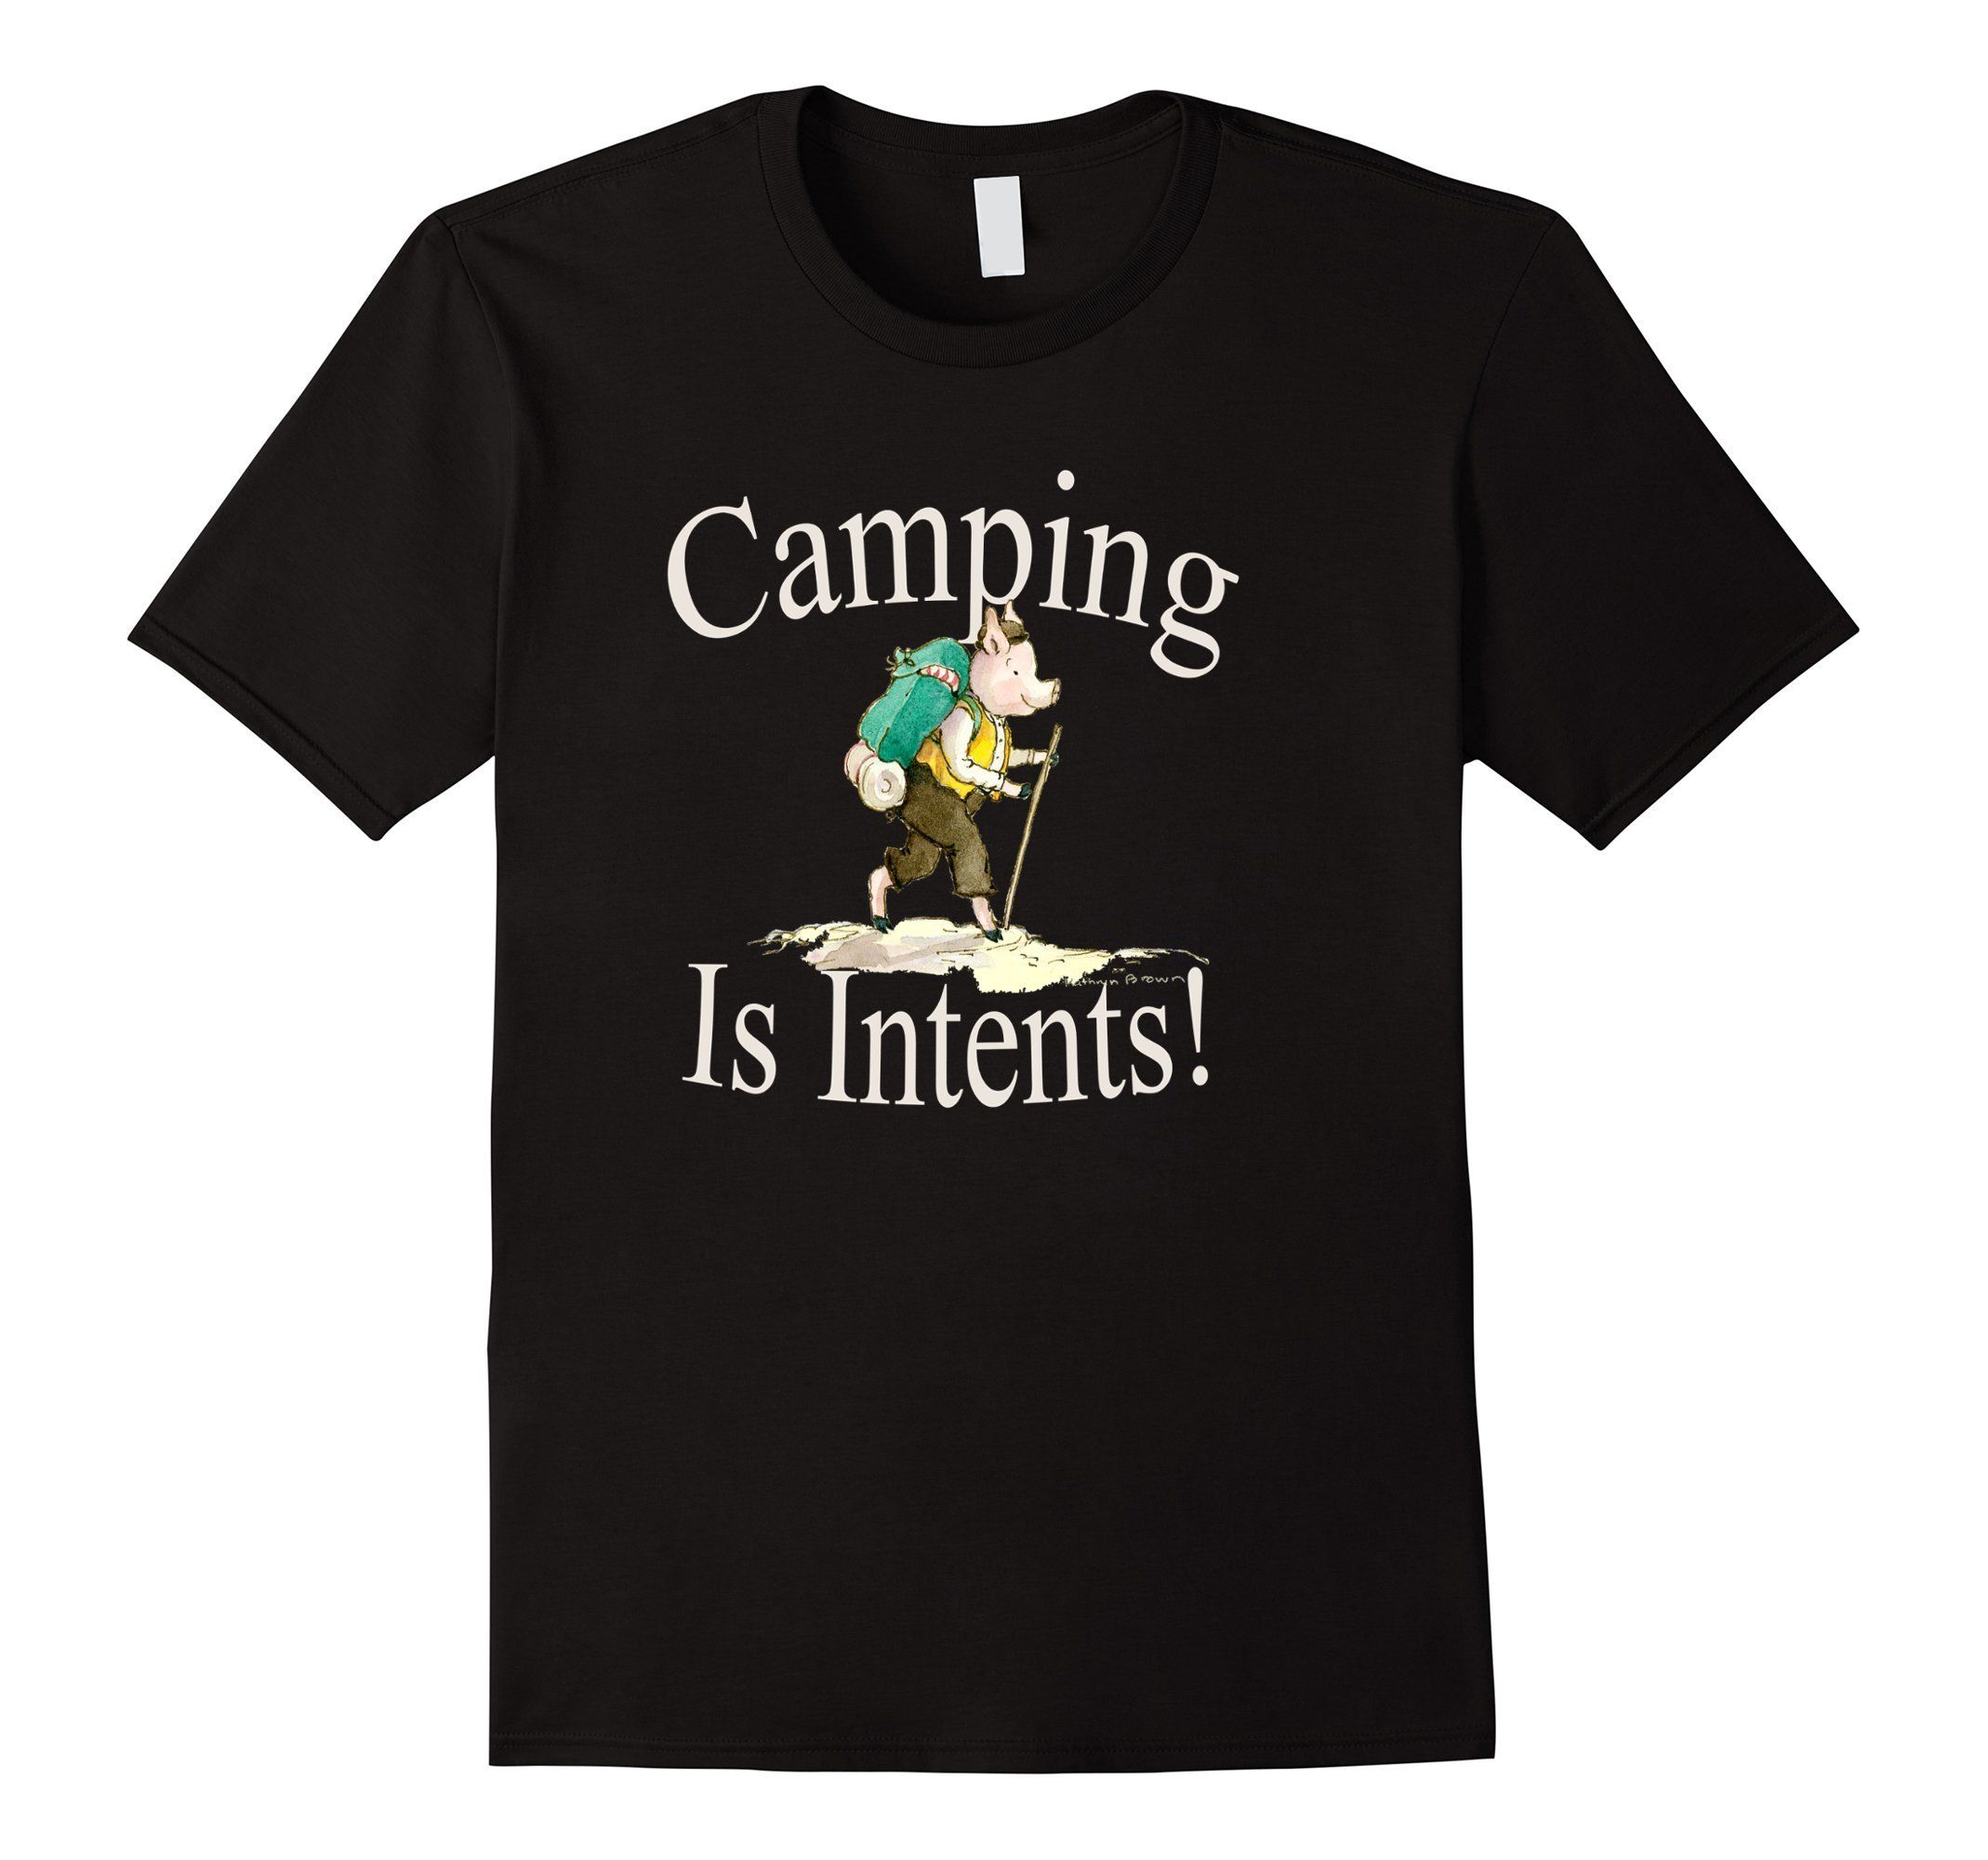 Camping is Intents! -